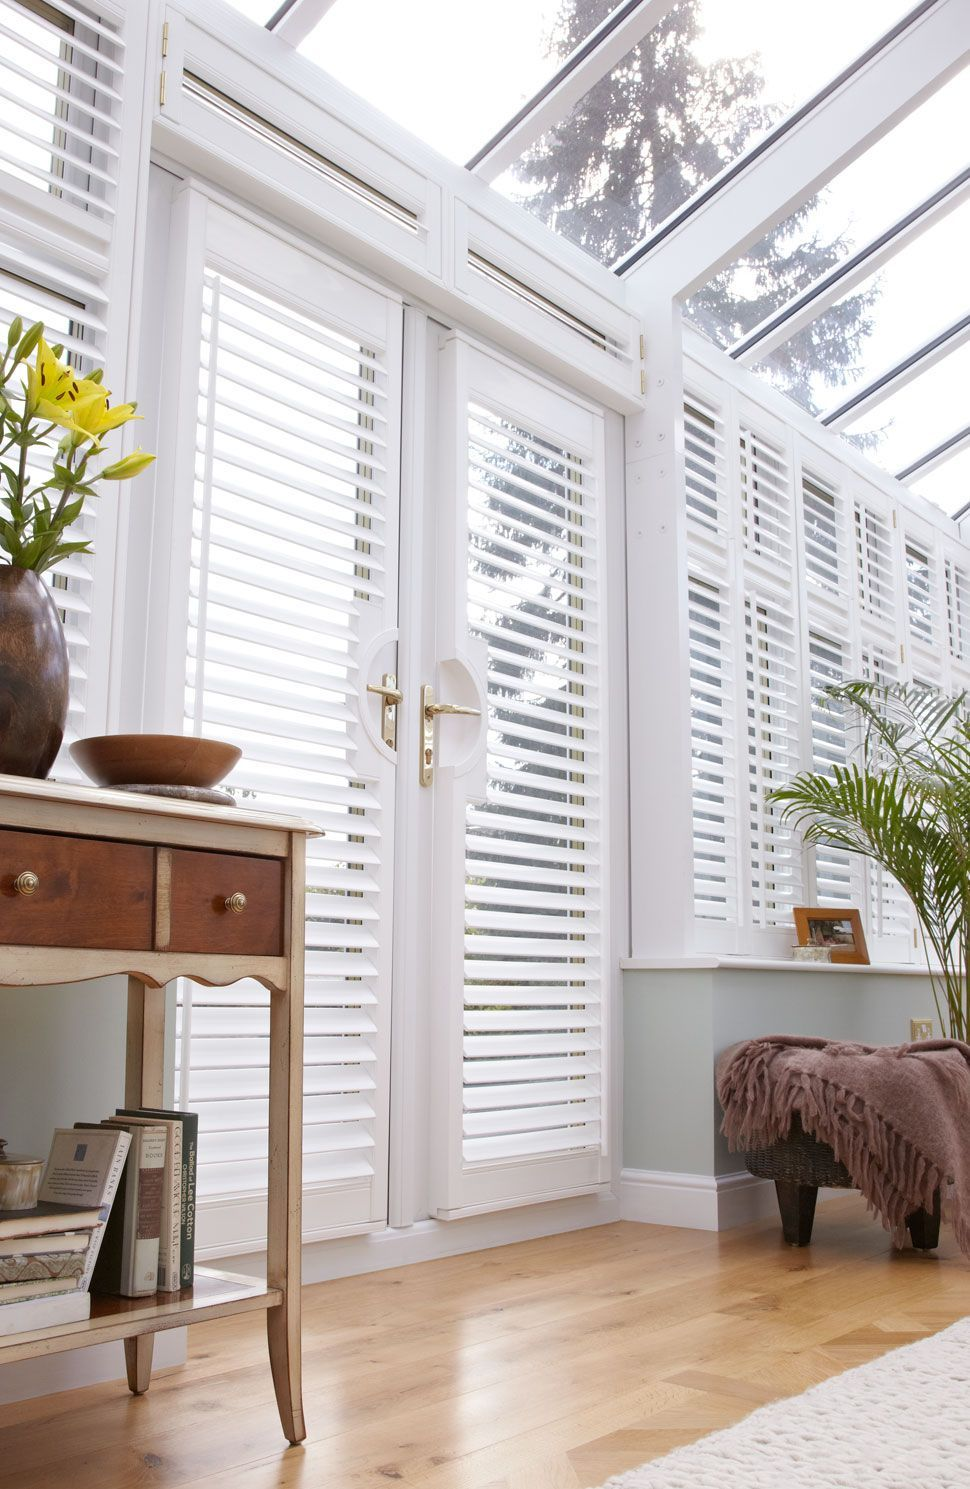 9 Nurturing Cool Ideas: Small Kitchen Blinds farmhouse blinds farm  house.Bamboo Blinds Nursery roller blinds conservatory.Vertical Blinds  Window.